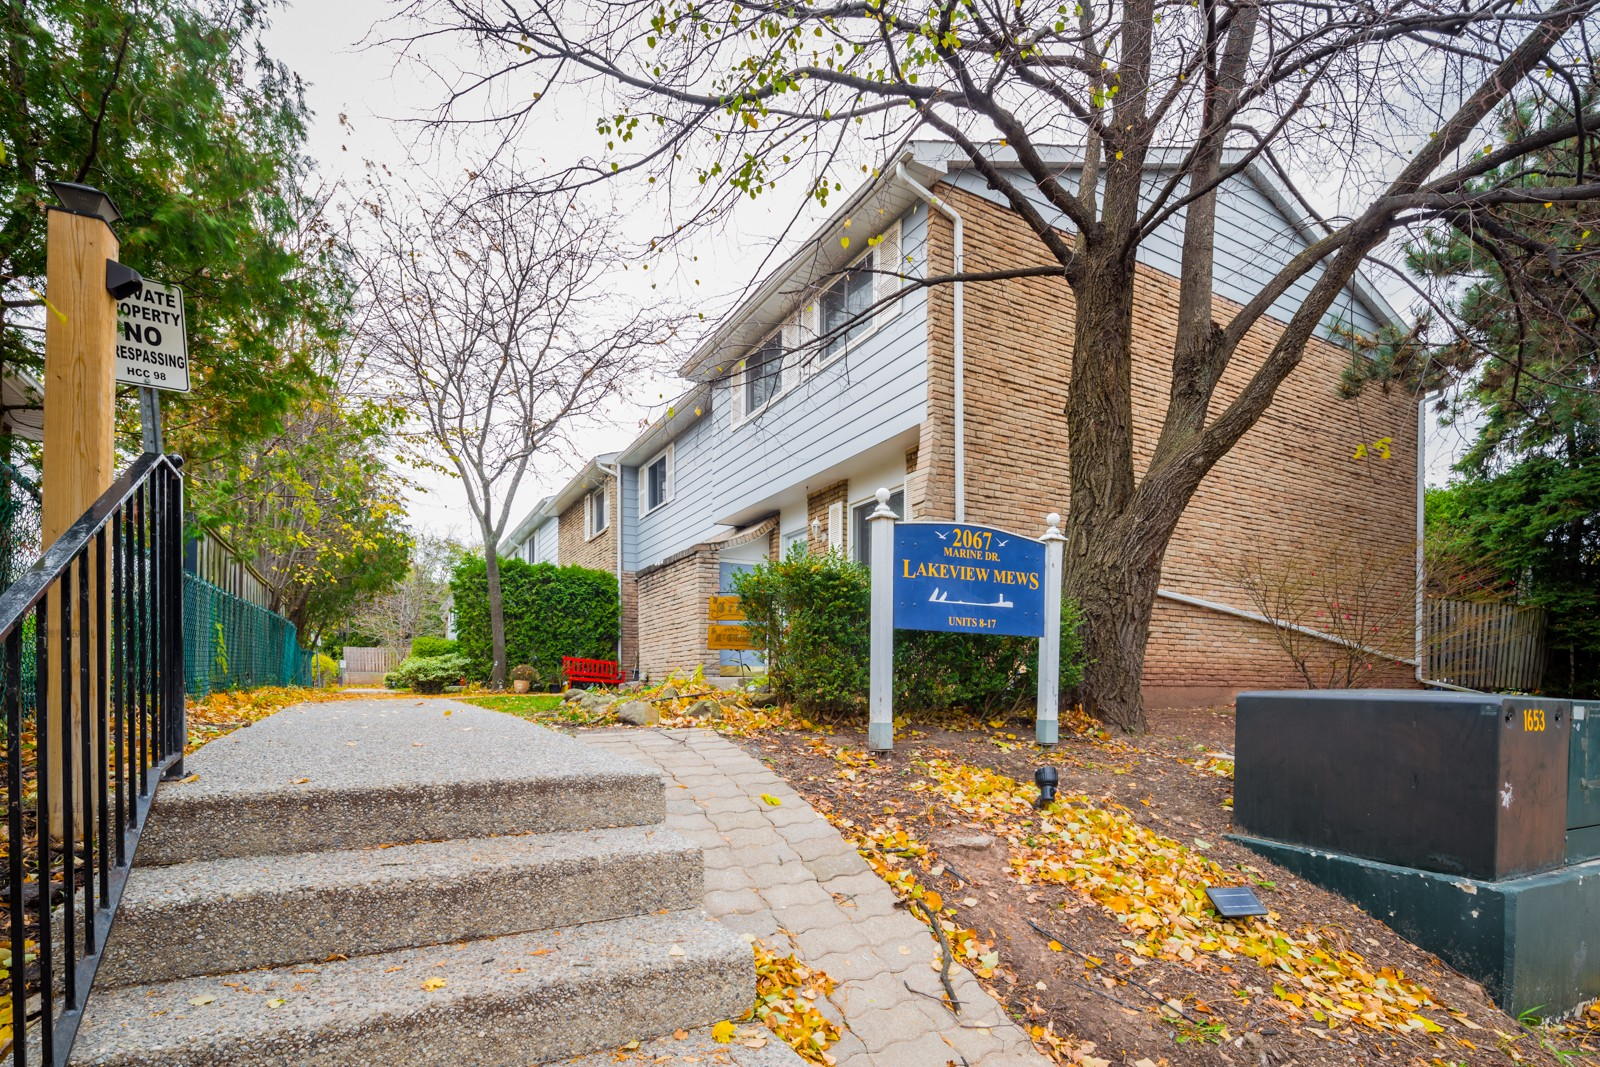 Lakeview Mews at 2067 Marine Dr, Oakville 0